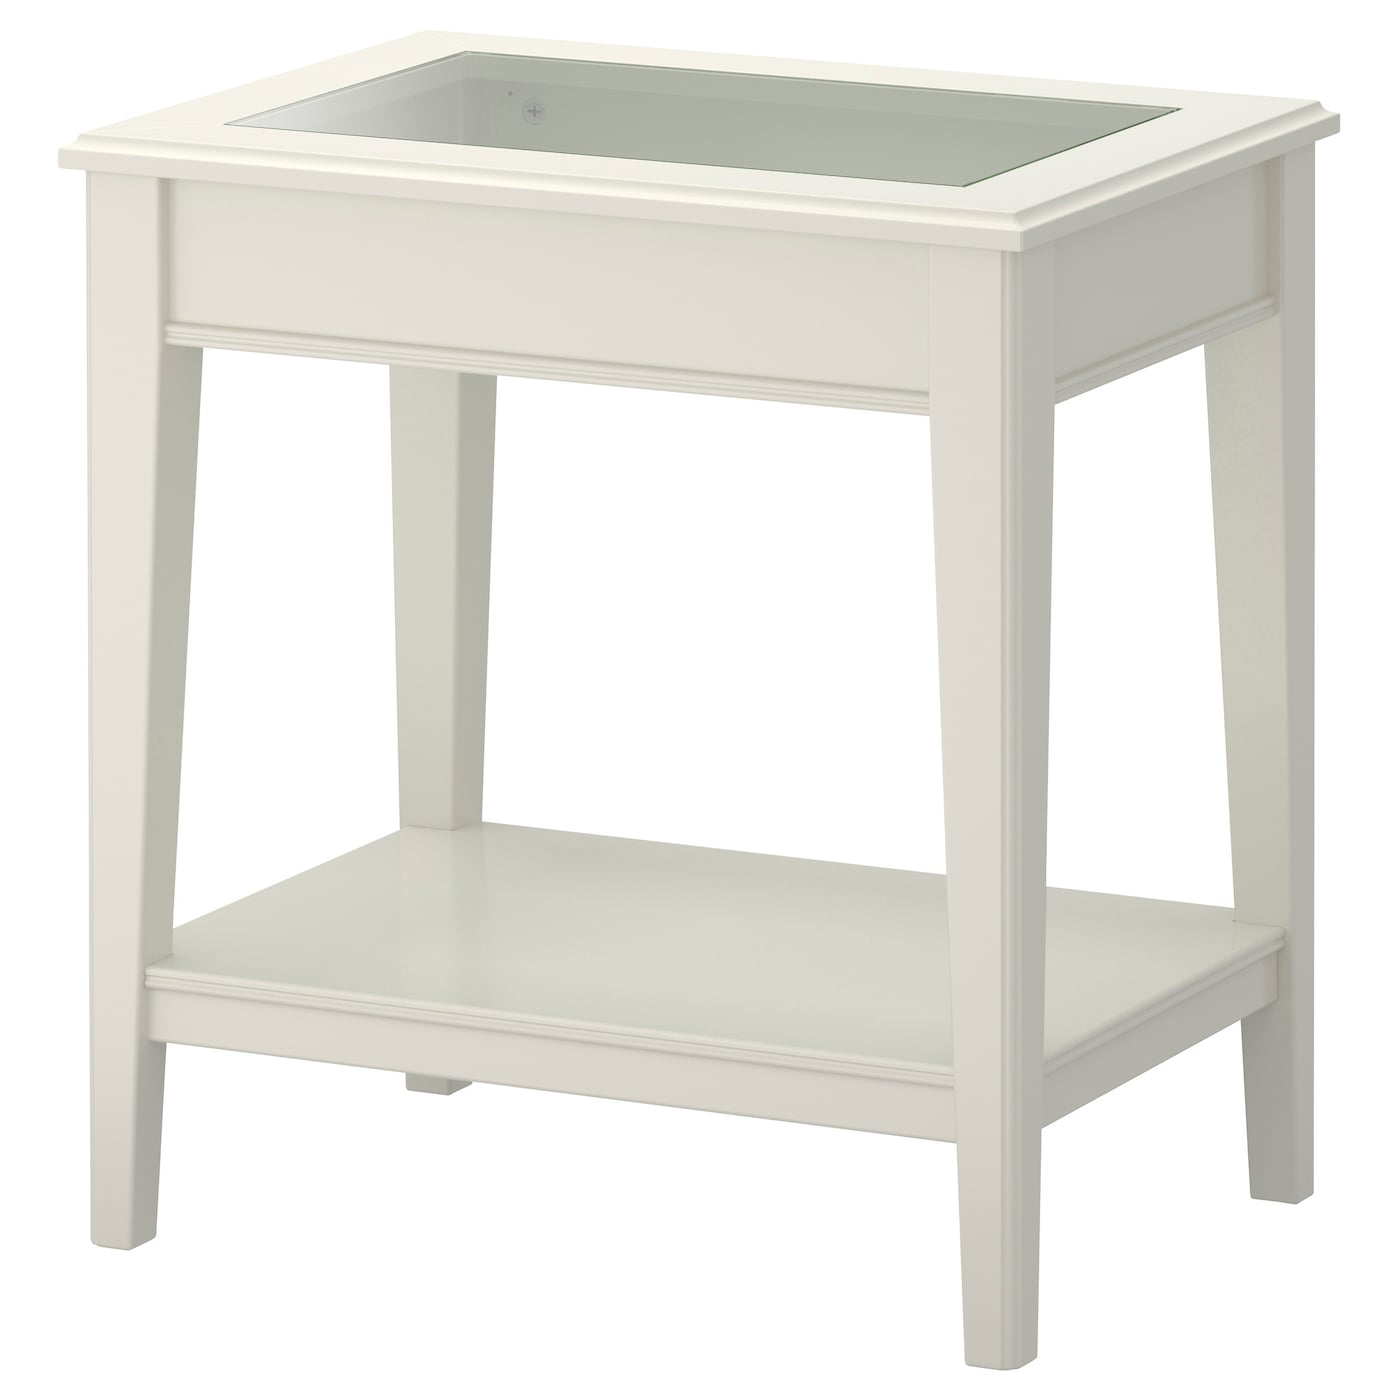 liatorp table d 39 appoint blanc verre 57 x 40 cm ikea. Black Bedroom Furniture Sets. Home Design Ideas